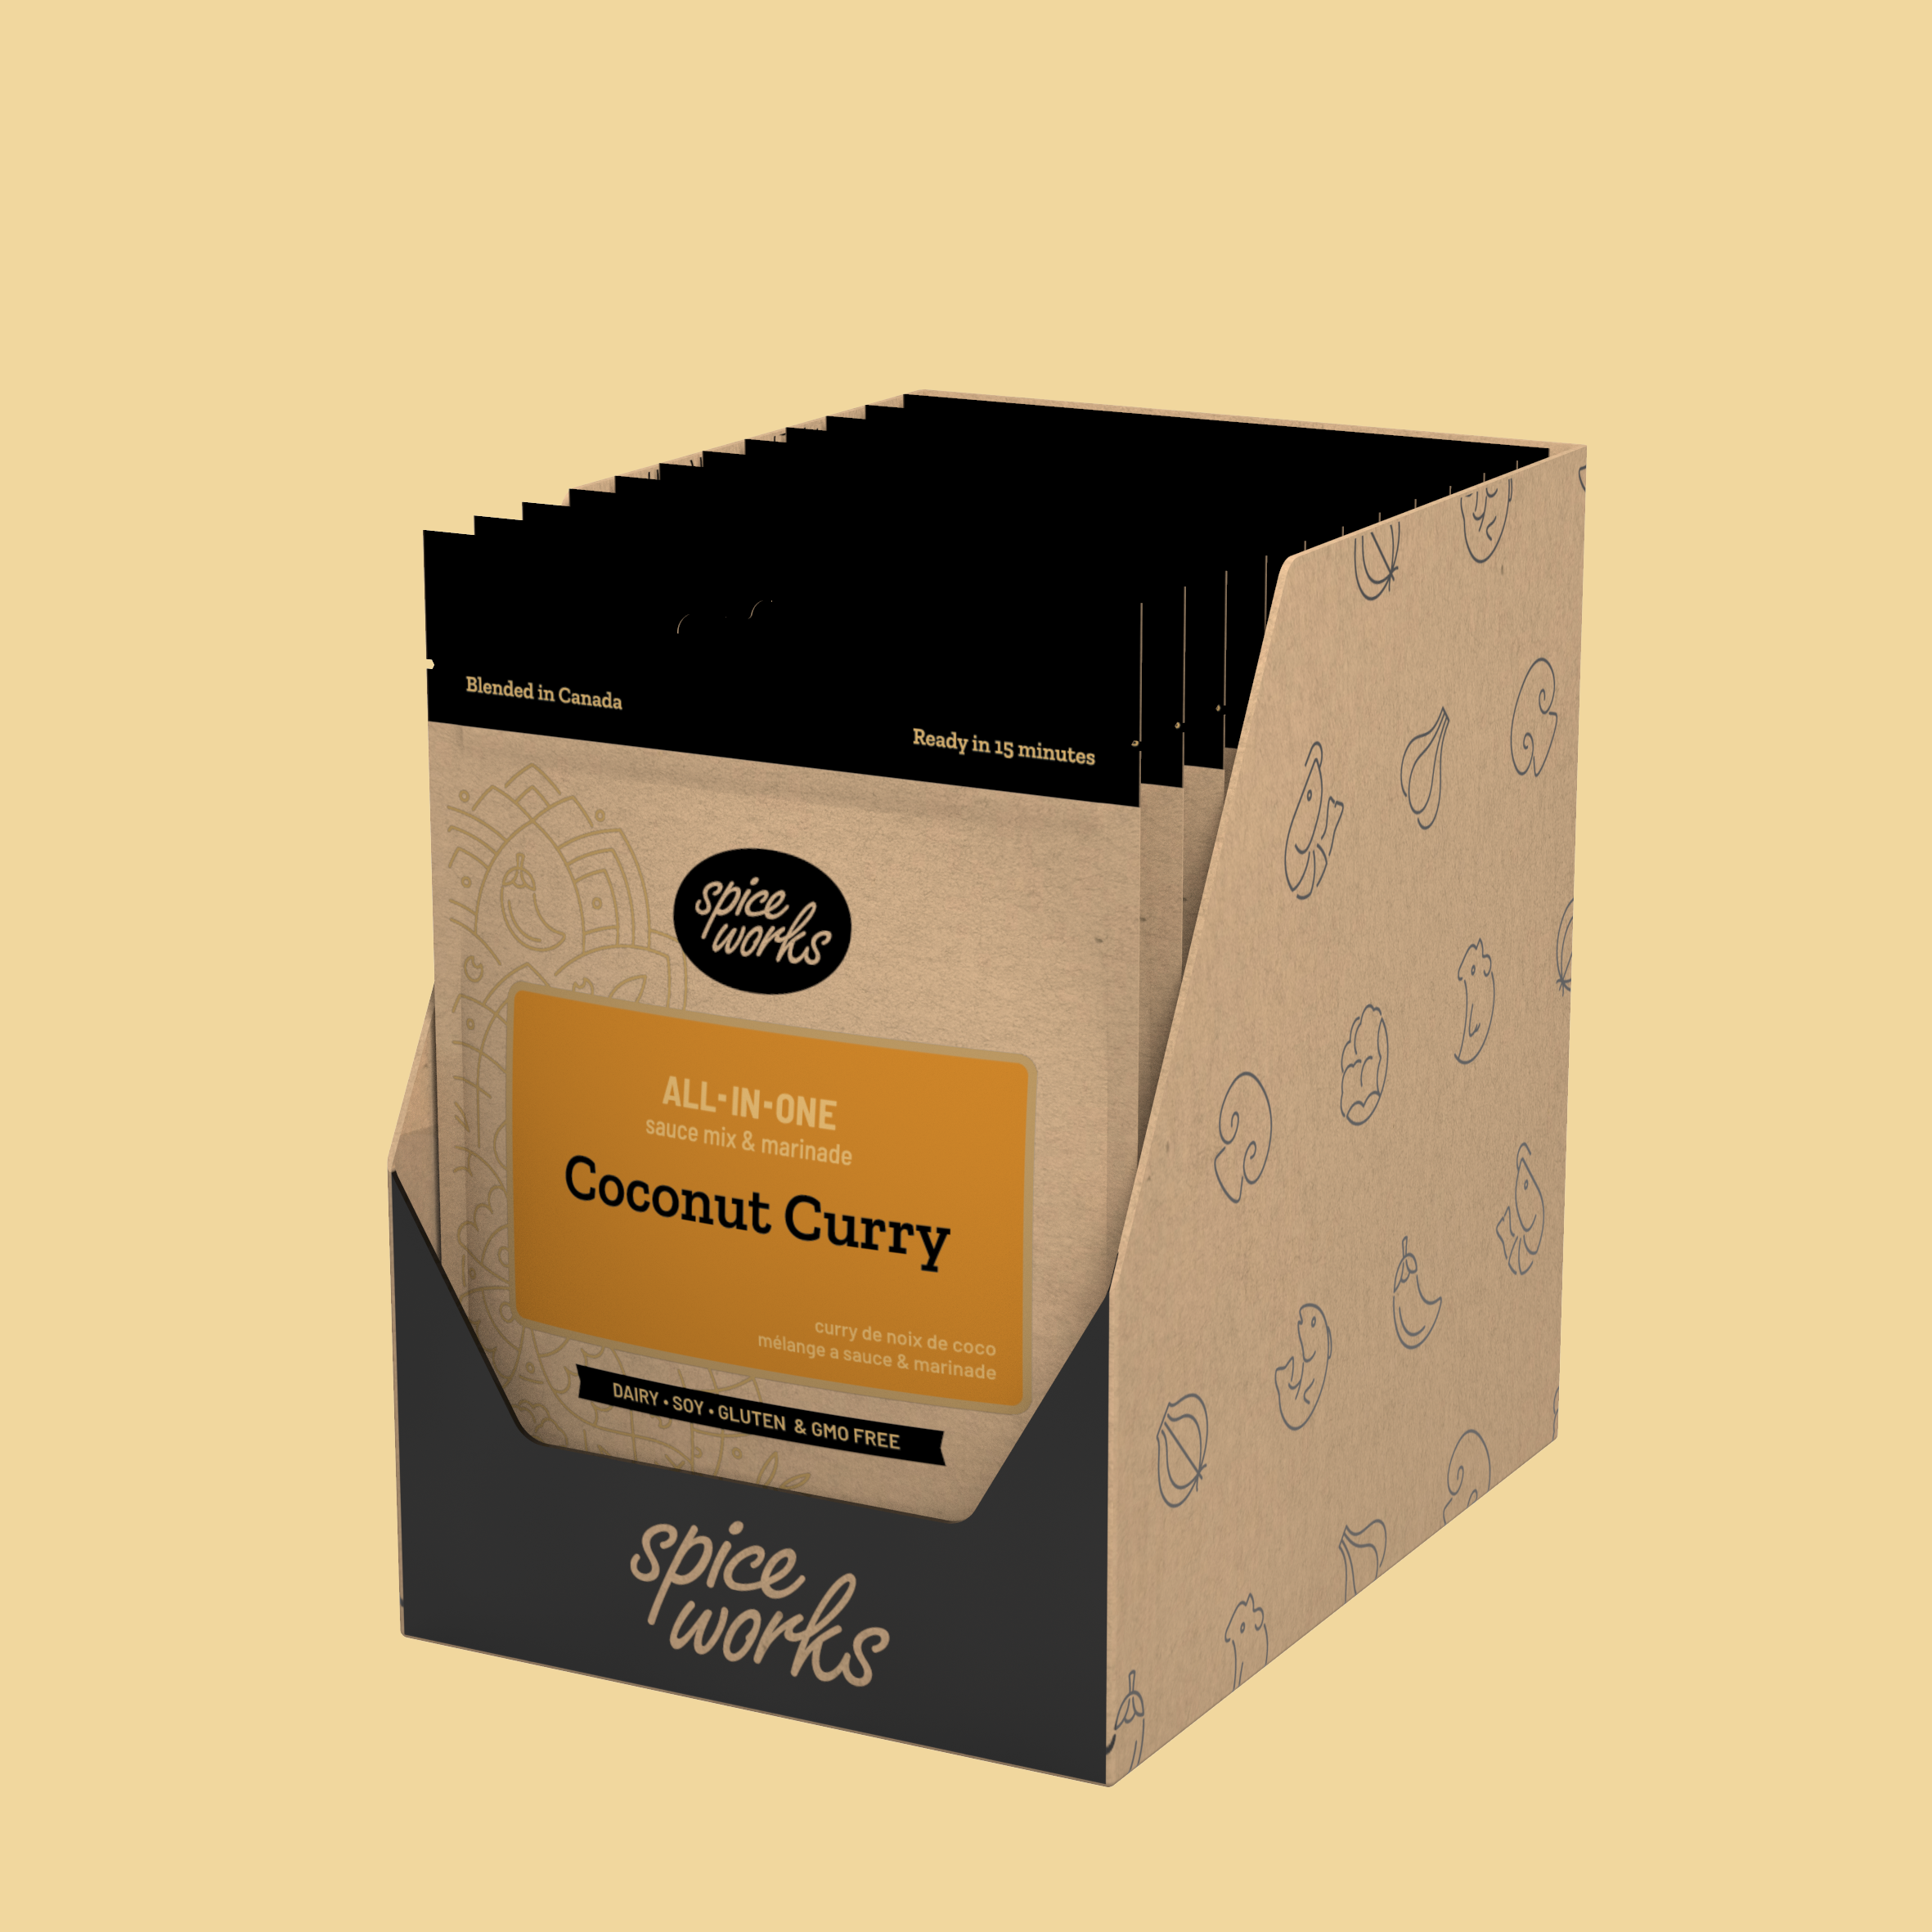 sw carton render - coco curry bkg - 061519.png